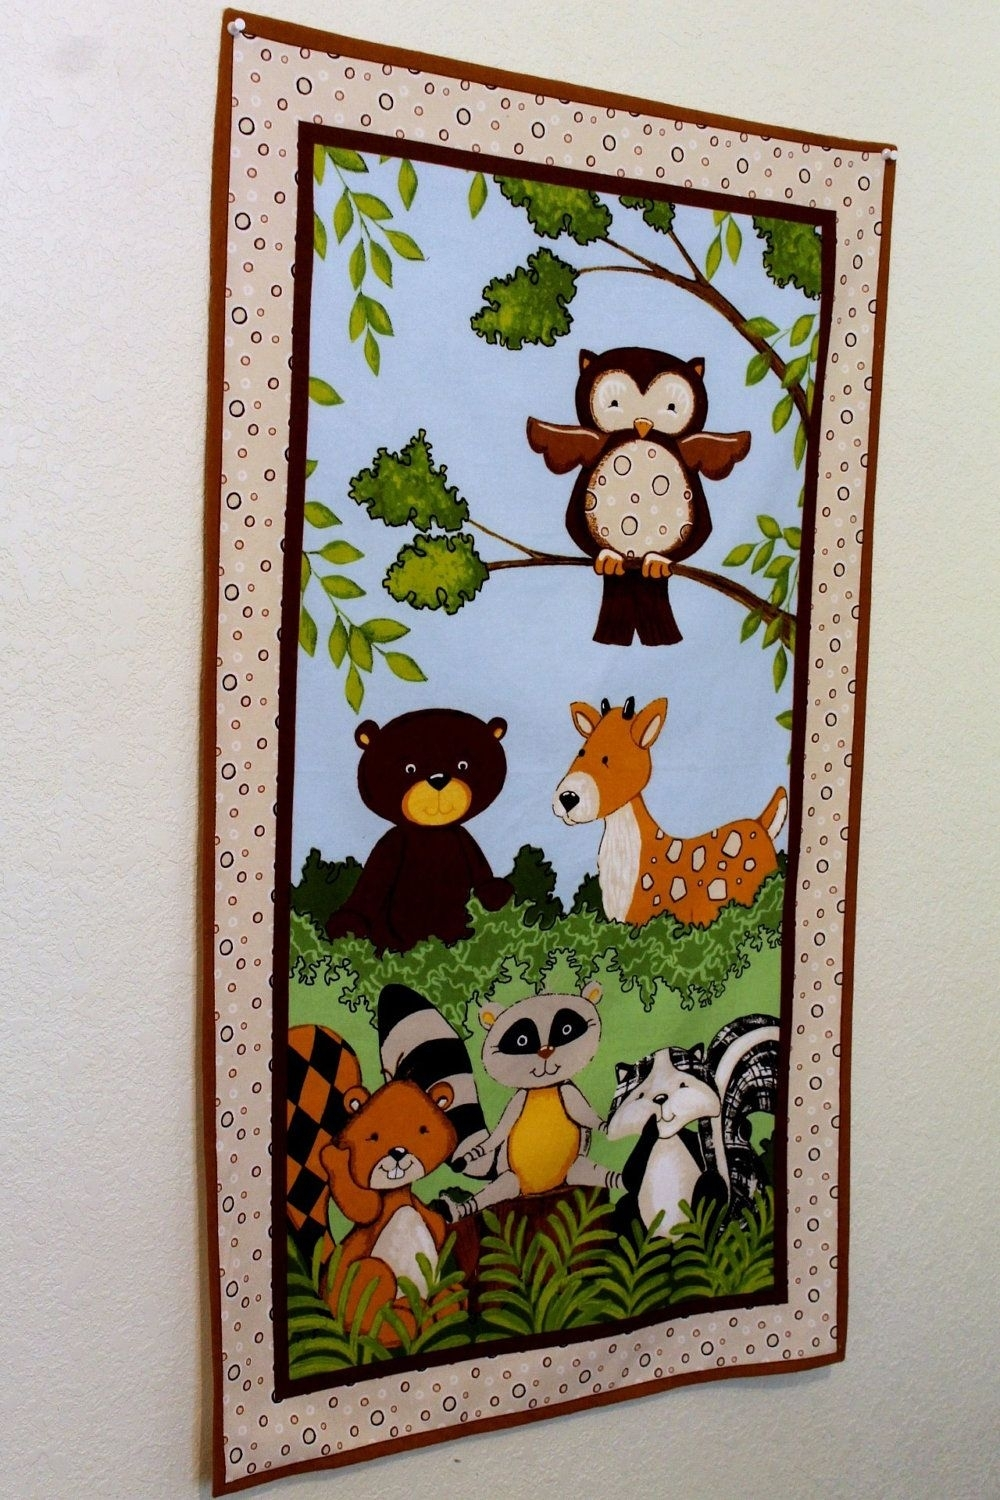 Wall Decor Woodland Animal Forest Creatures Flannel Fabric Panel Within Most Popular Nursery Fabric Wall Art (View 14 of 15)